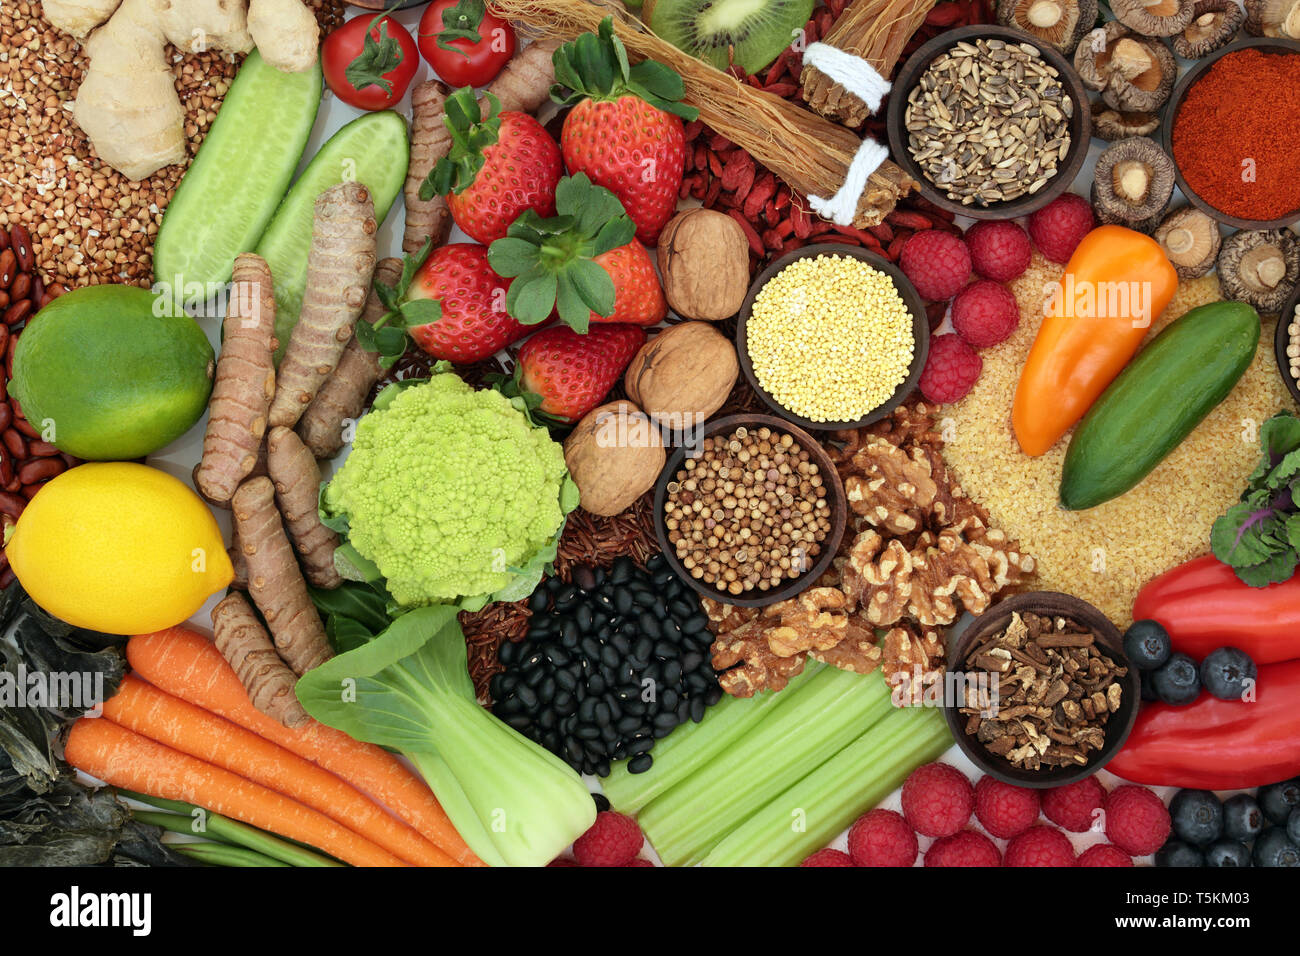 Liver detox diet health food concept with fresh fruit, vegetables, herbs, spices, legumes, herbal medicine, nuts, grains &  seeds. - Stock Image